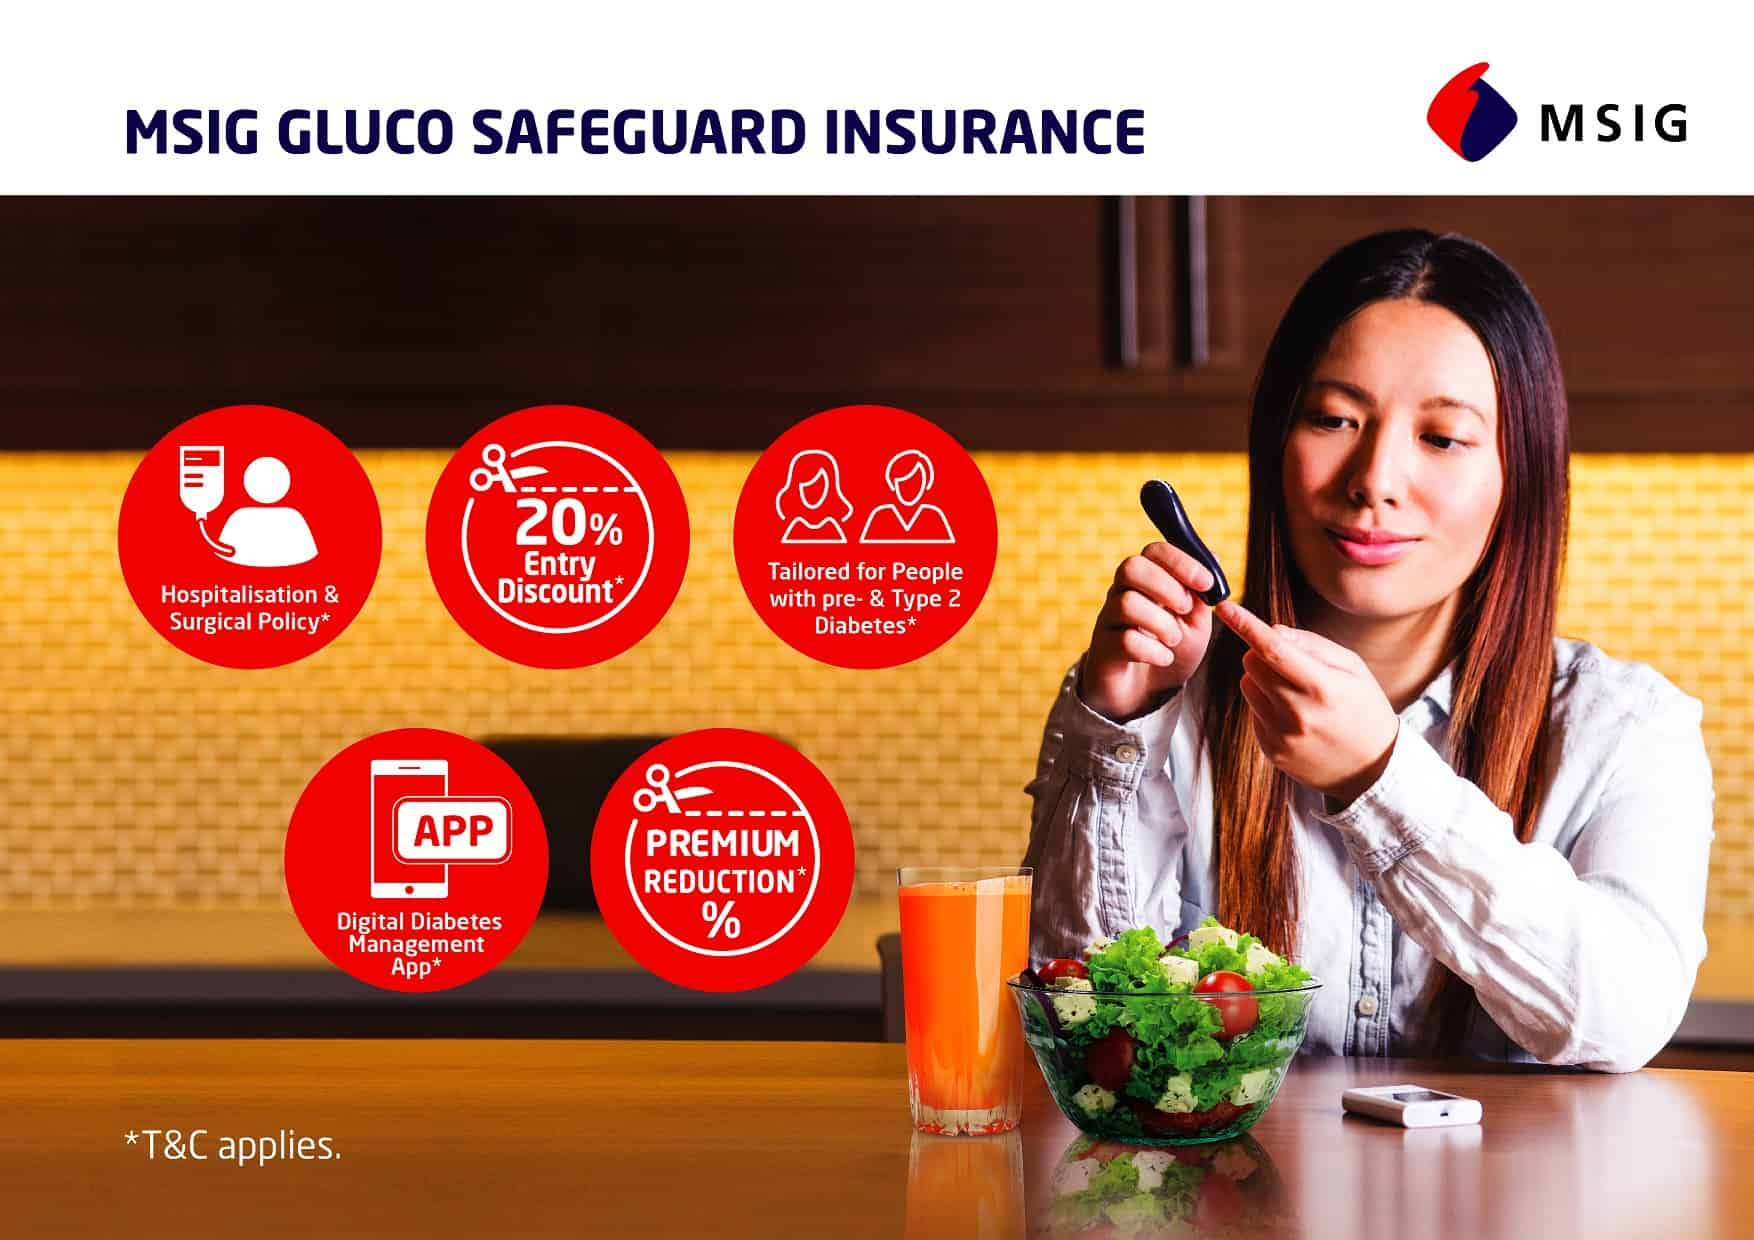 MSIG LAUNCHES GLUCO SAFEGUARD